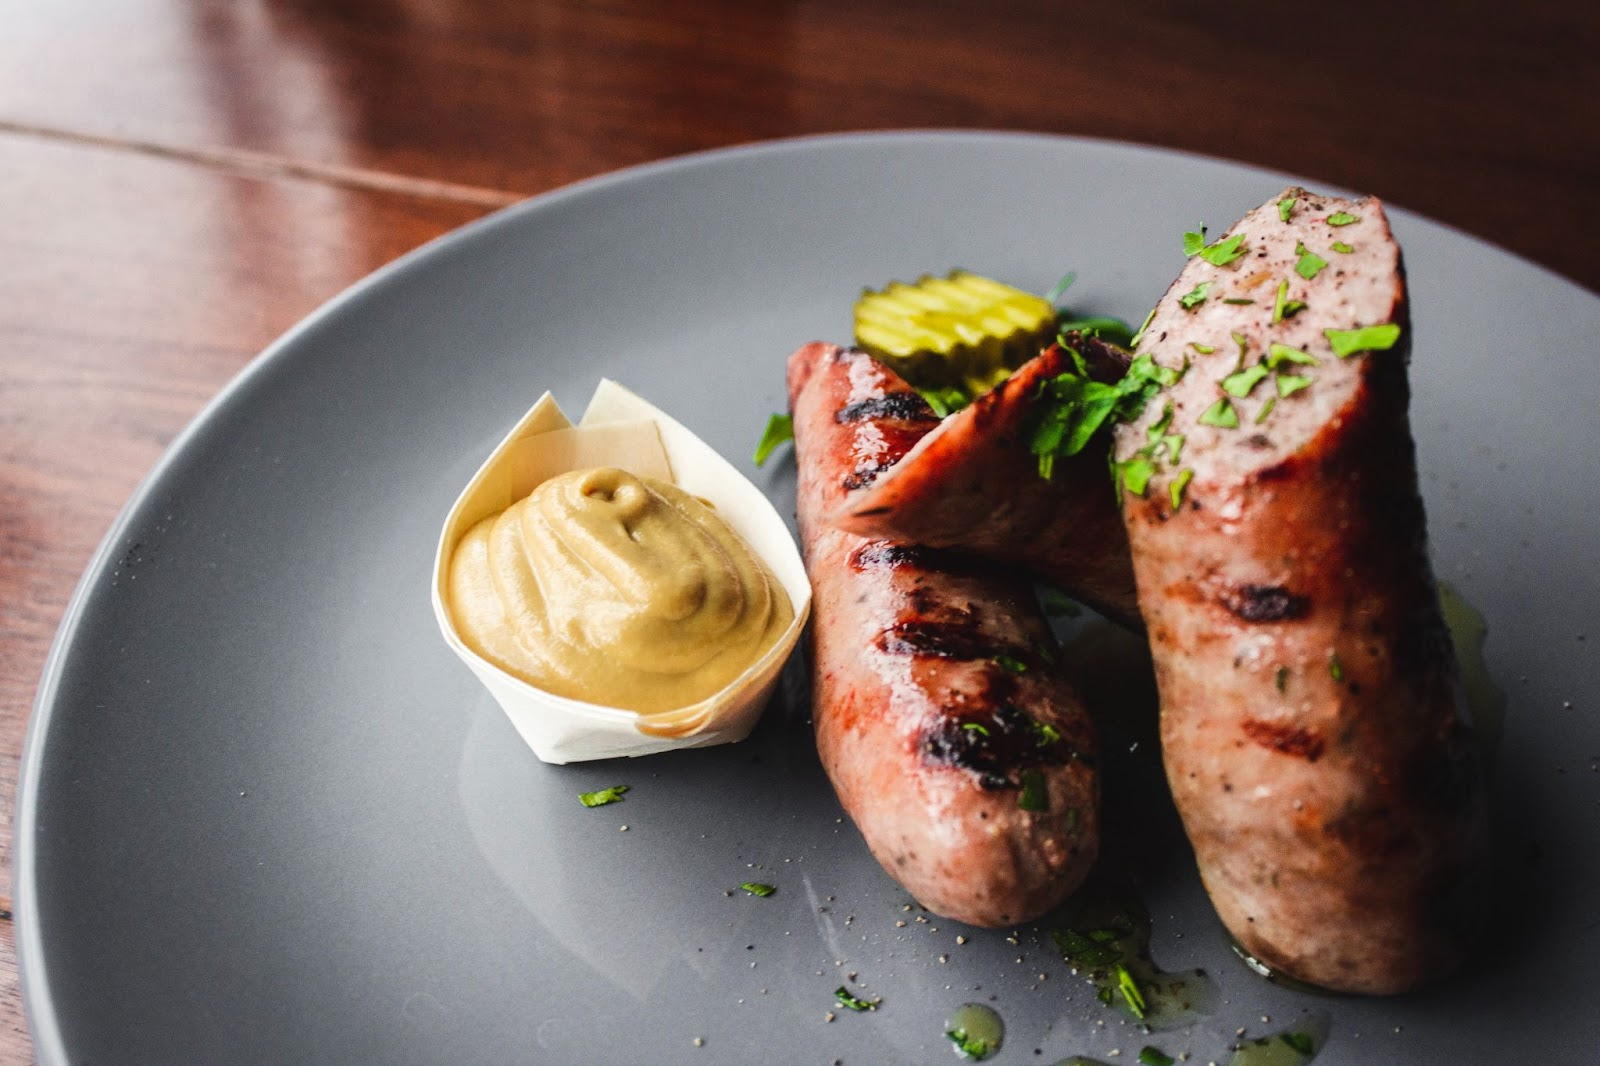 A dish with two halves of homemade skinless sausage.